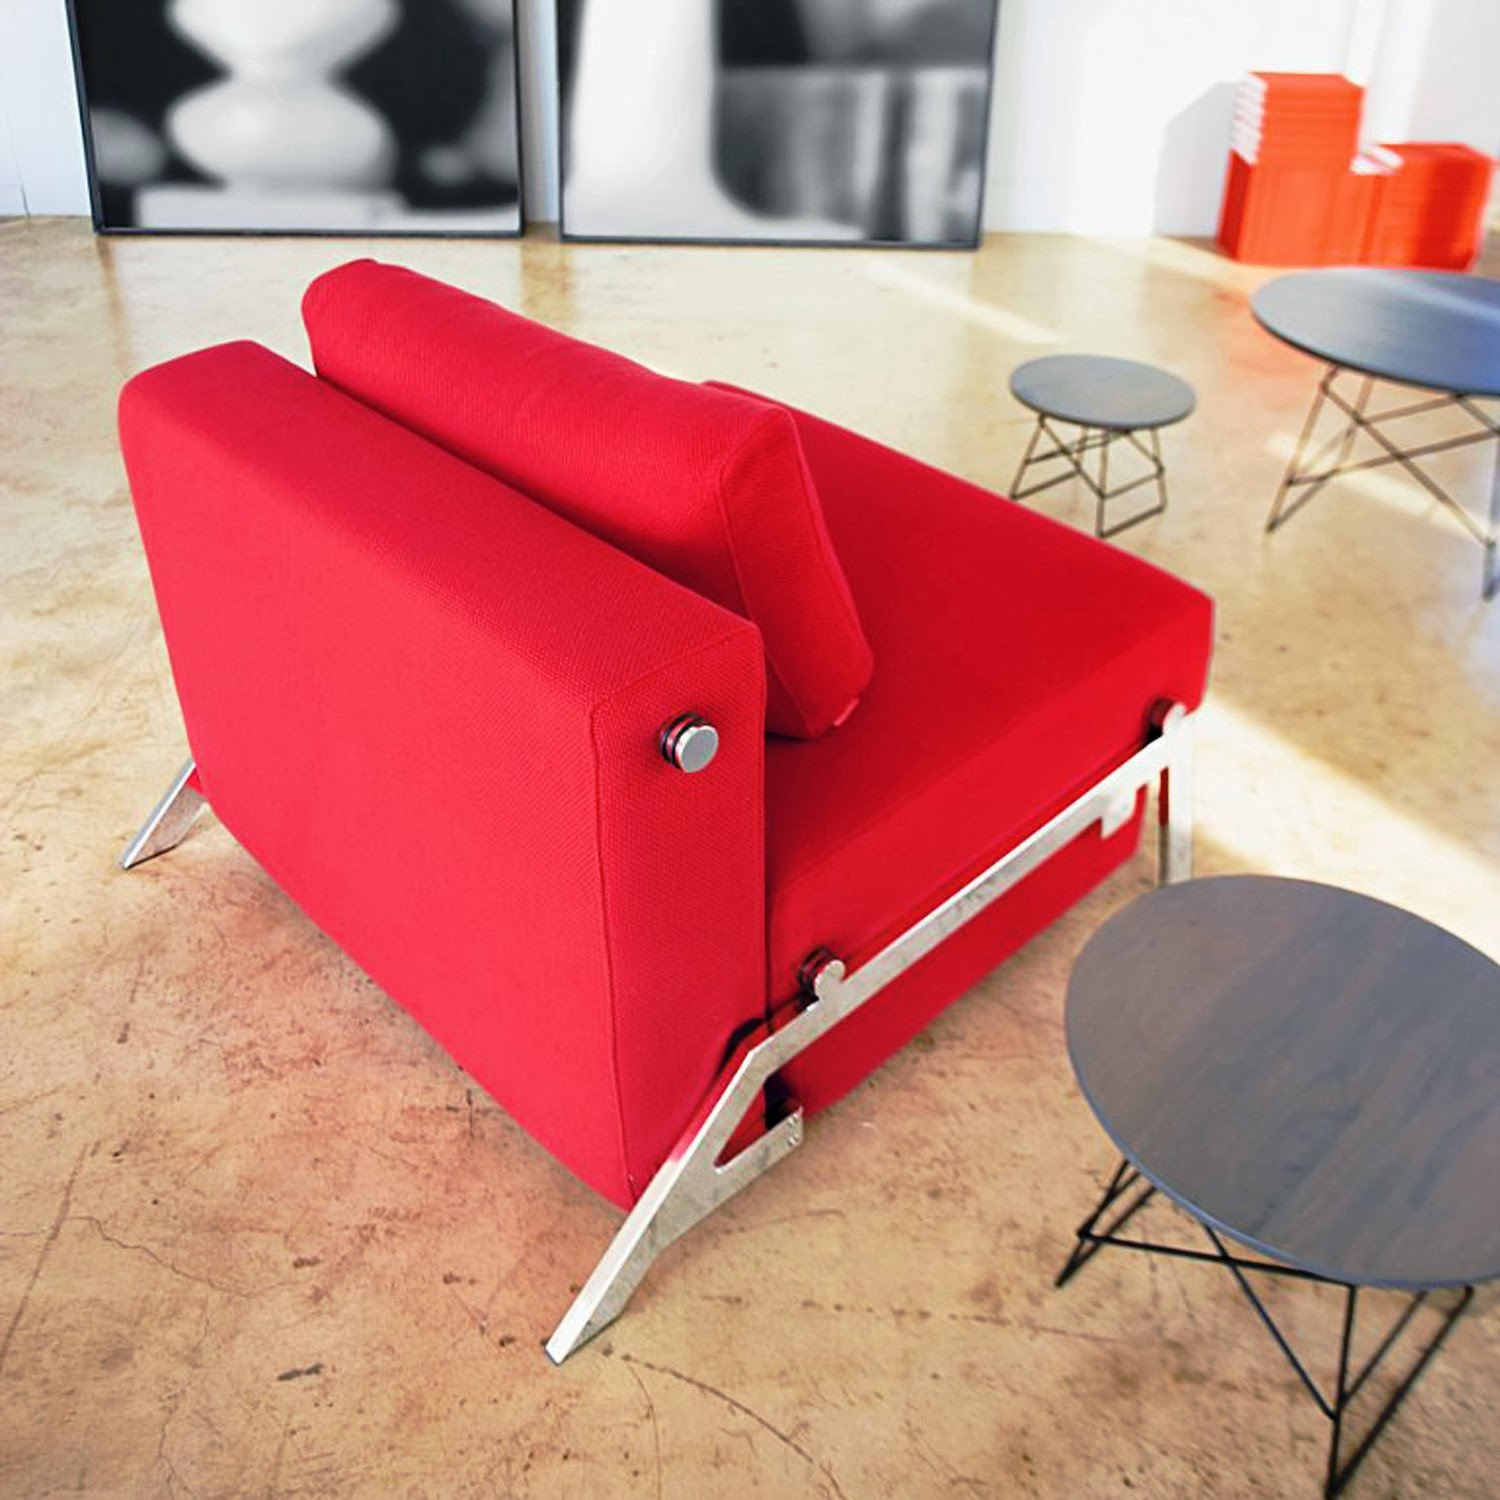 Cubed Sleek Chair by Per Weiss